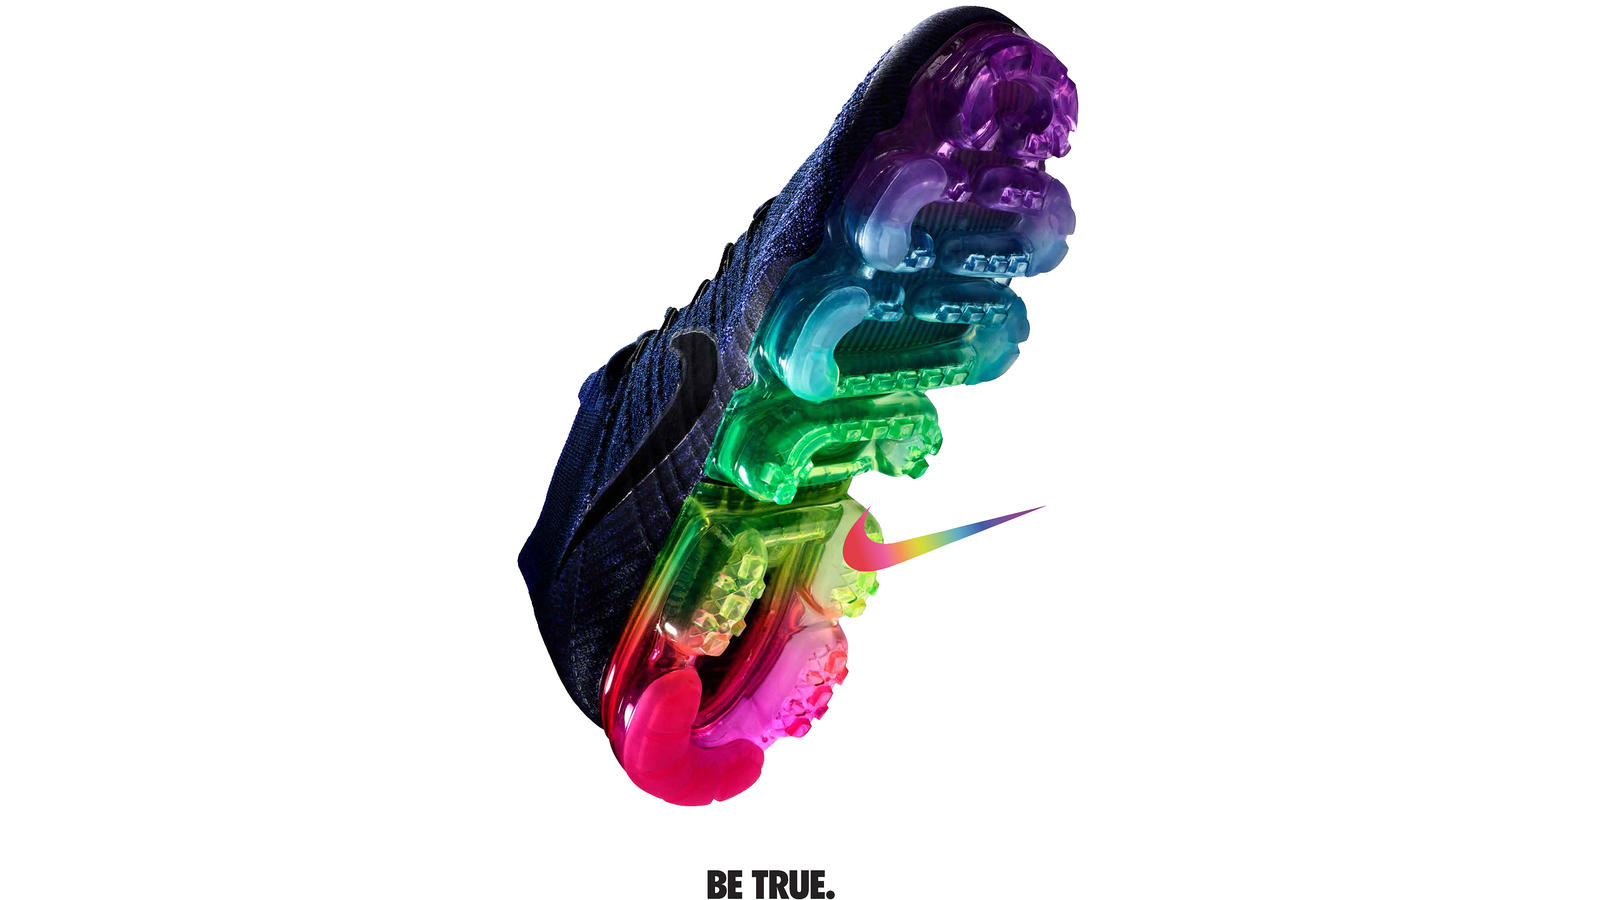 h1114_be_true_product_posters_420x594mm-1_hd_1600